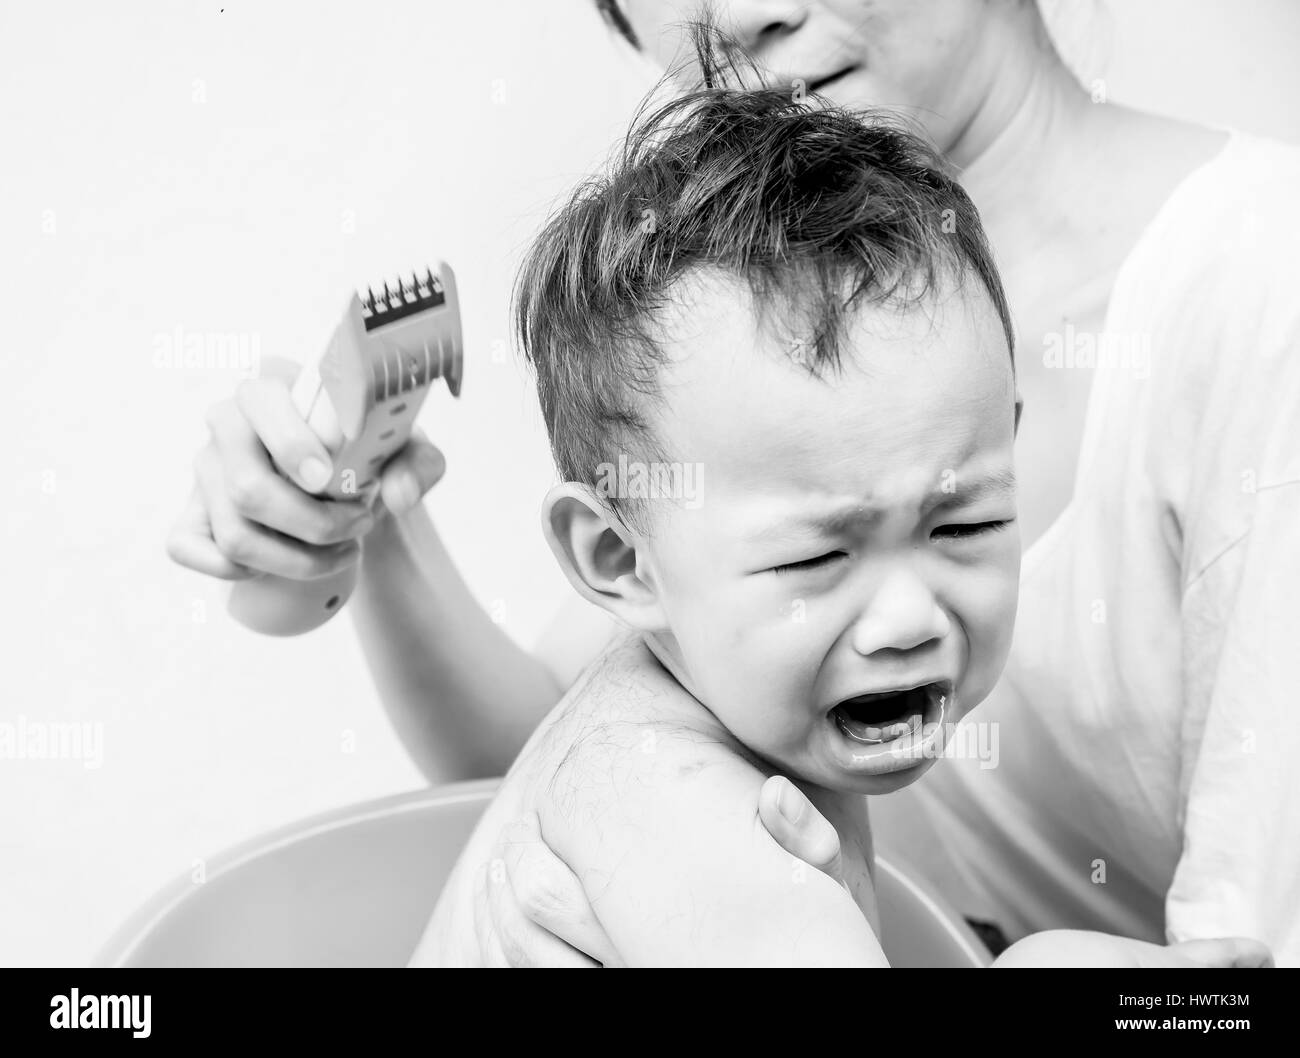 Fear, Thai baby feel scare of hair clipper when mother cutting his hair - Stock Image